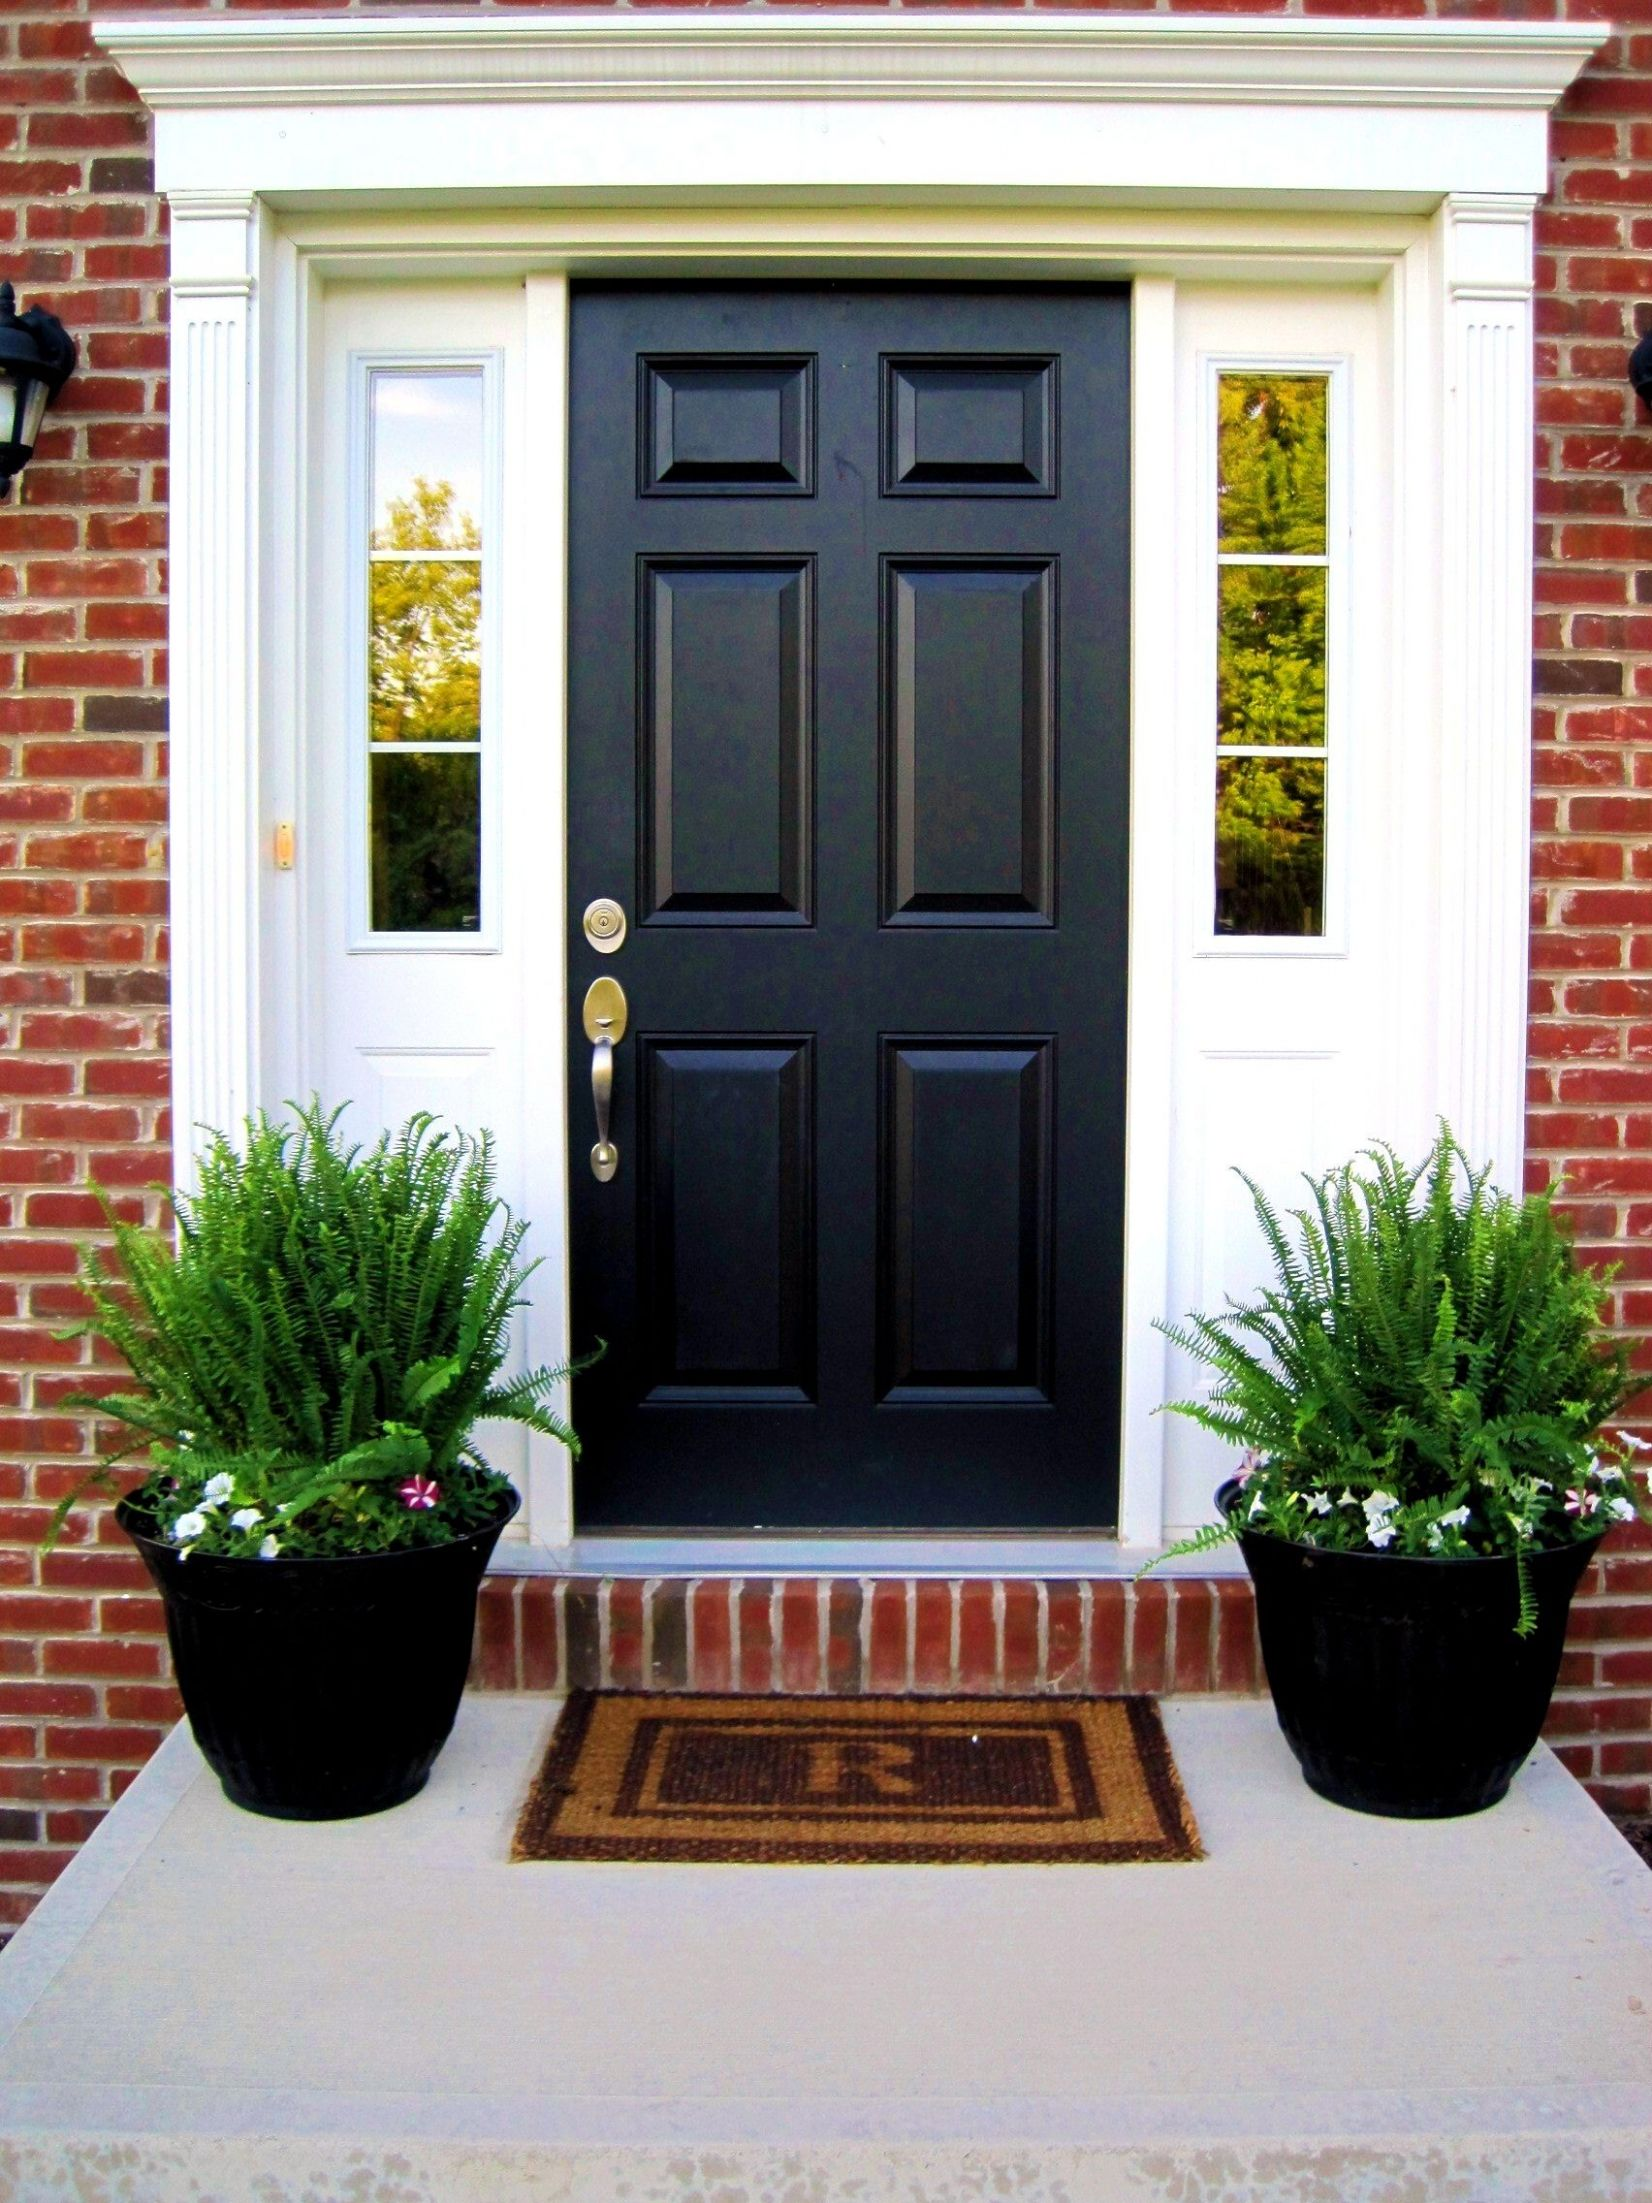 Potted Plants For Outside Front Door | Front porch flower pots ...